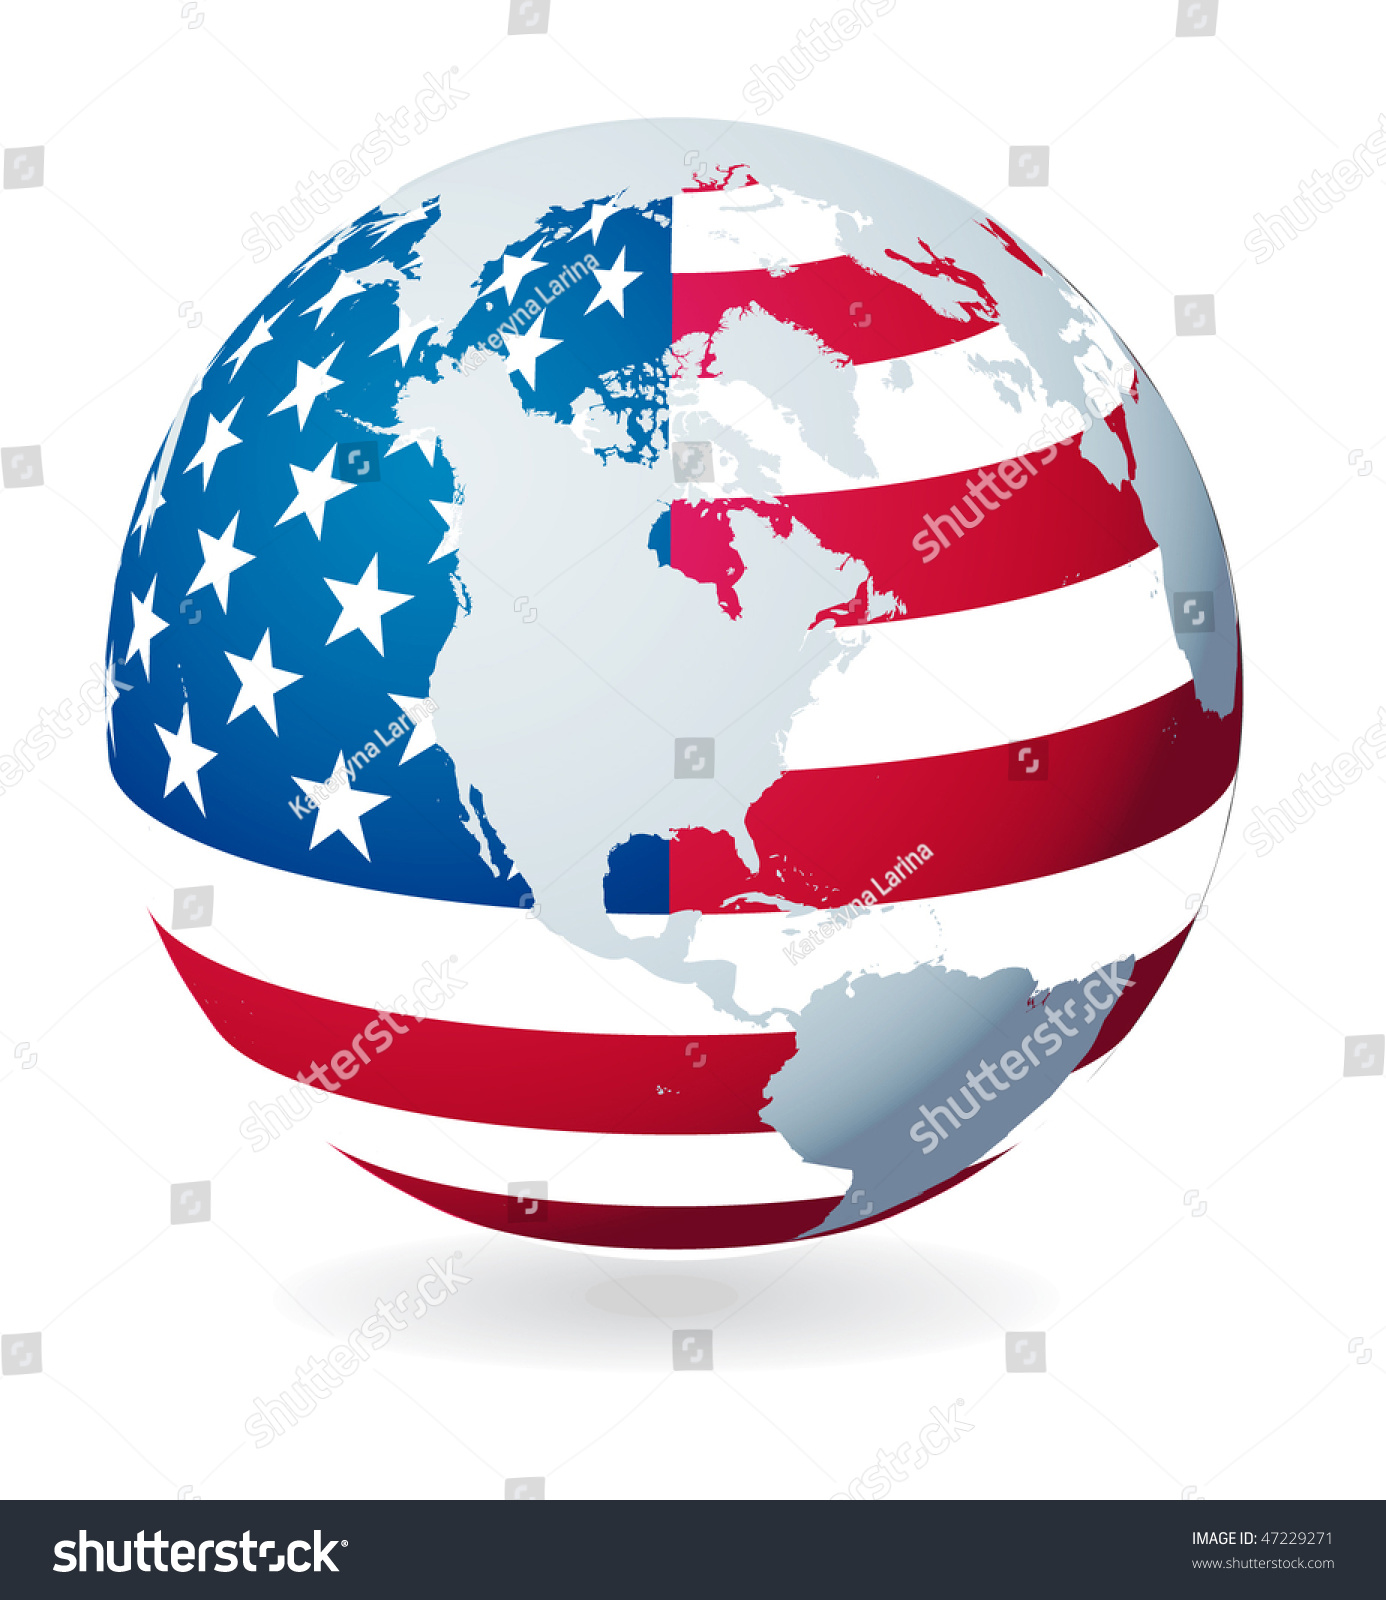 Globe Flag Usa File Eps Stock Vector Shutterstock - Globe of usa